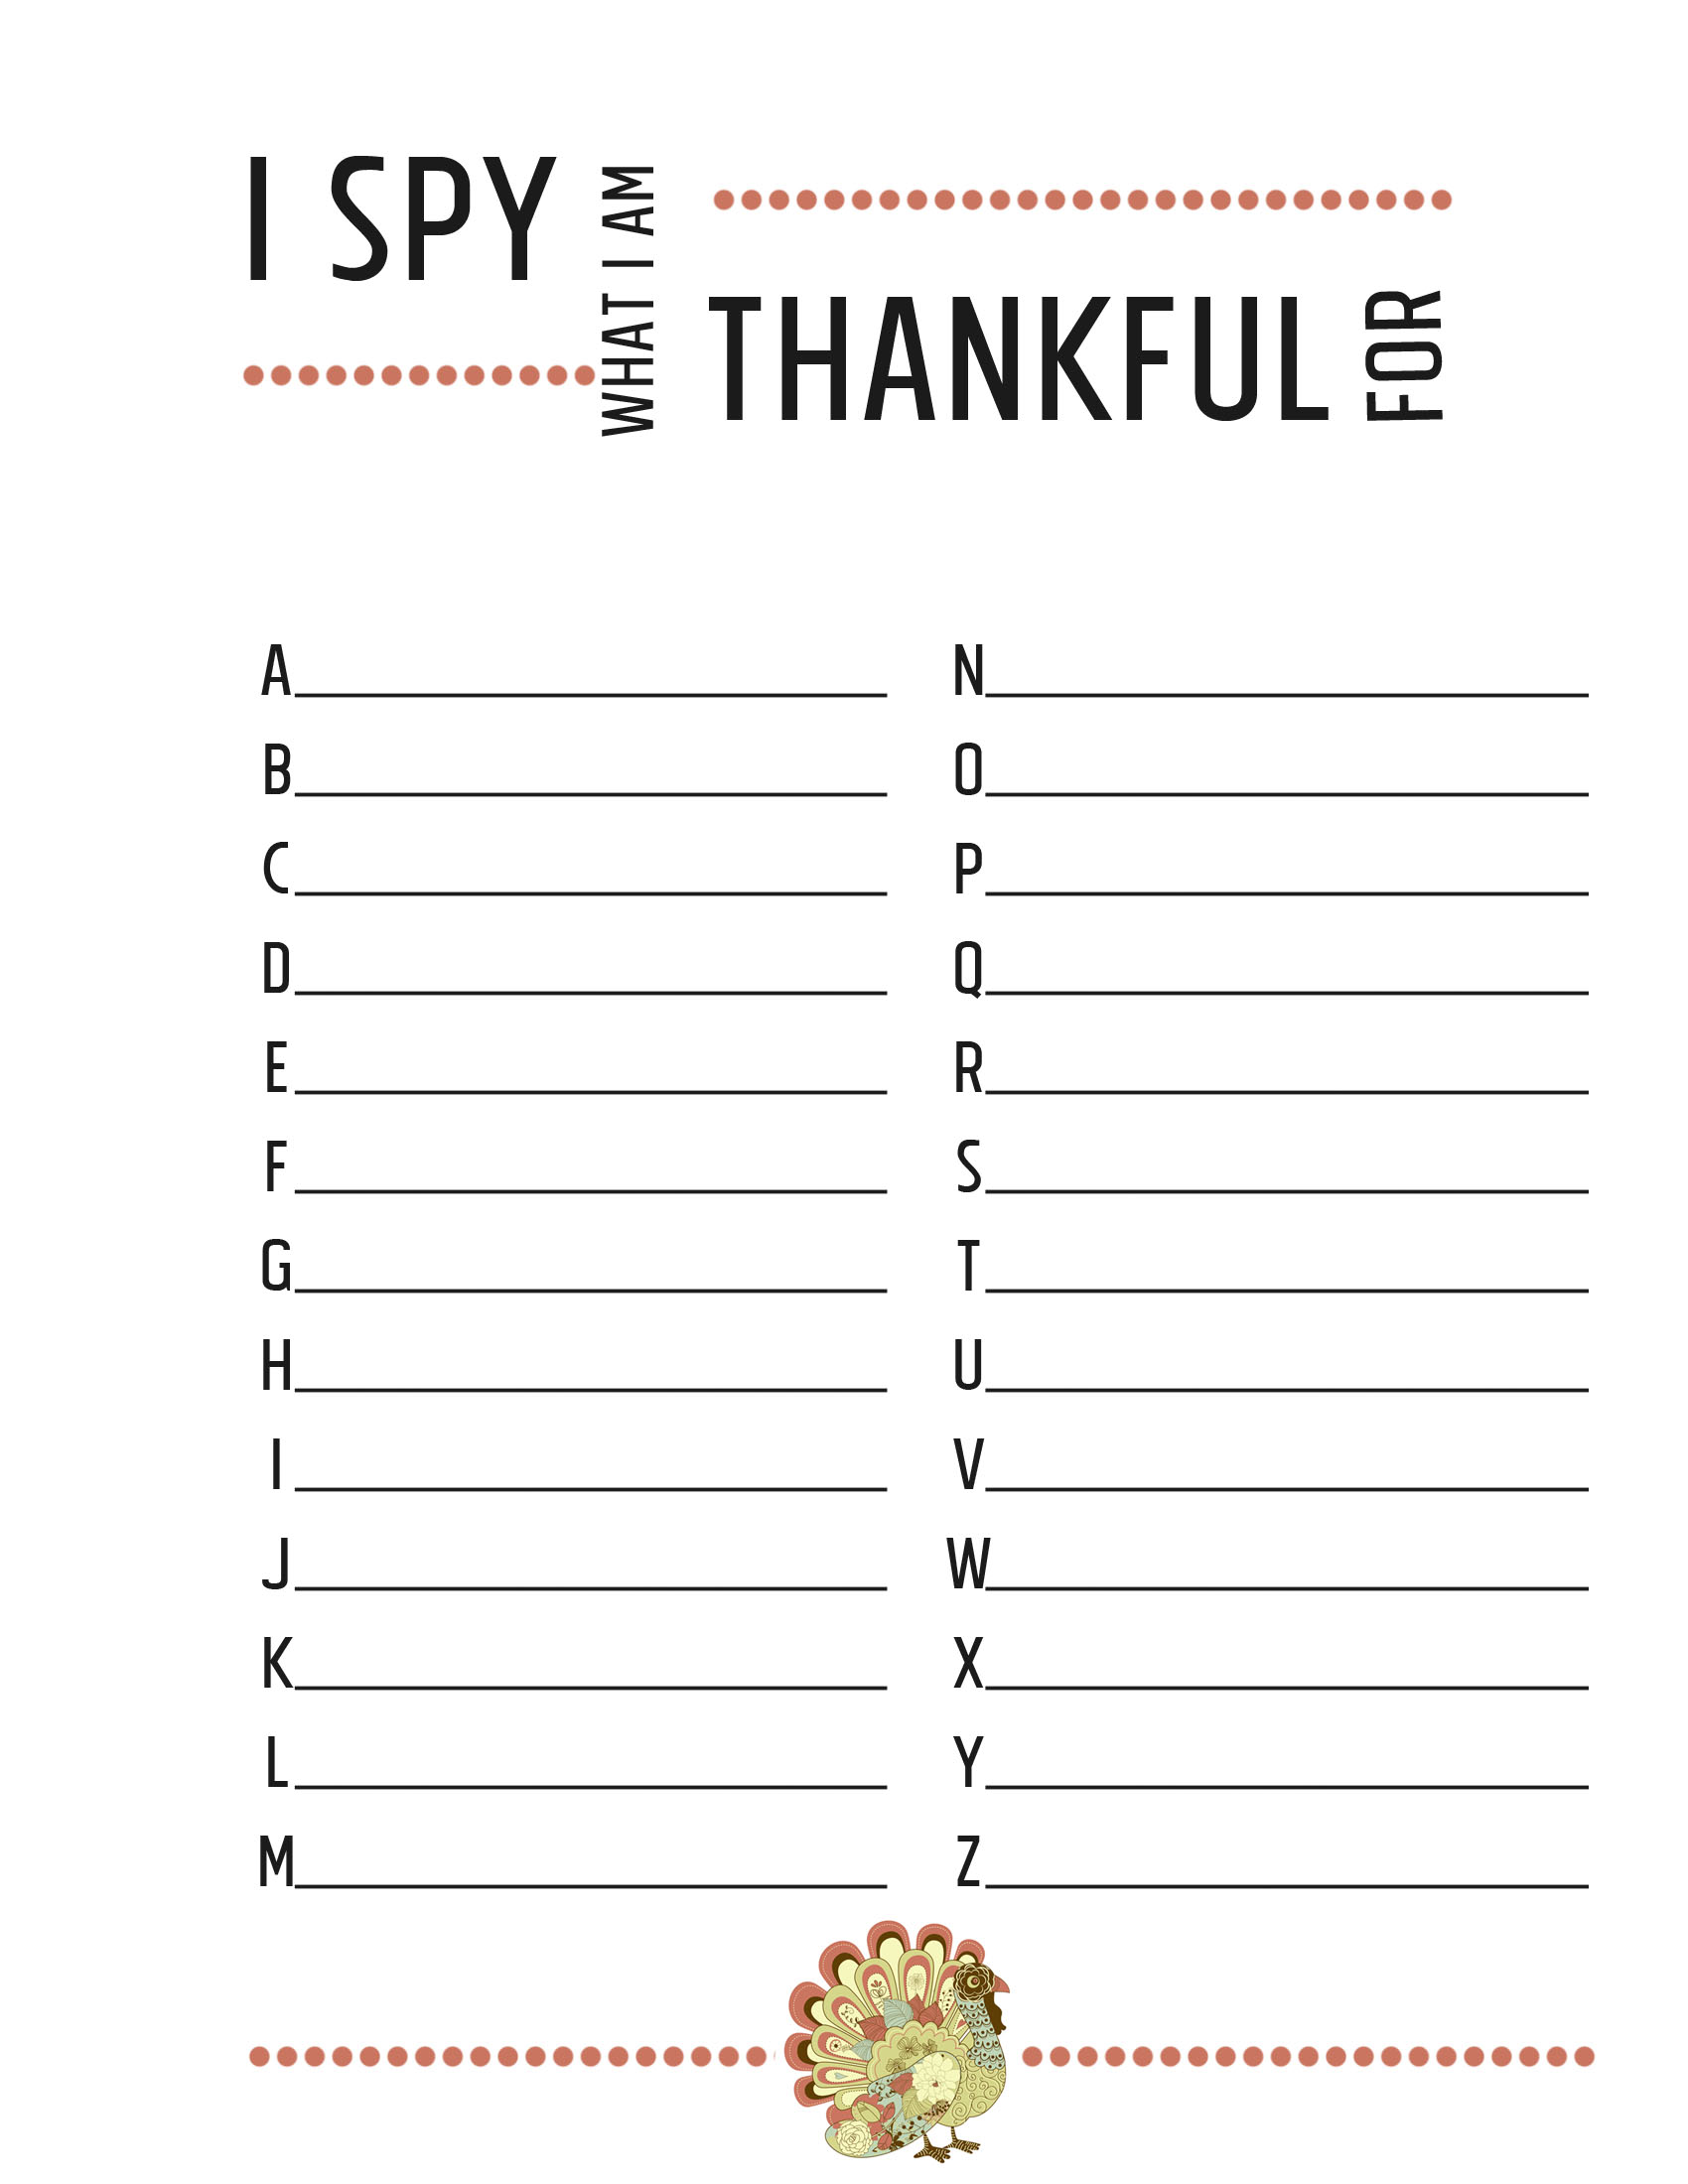 Thanksgiving Worksheets free printables JessicaLynette – I Spy Worksheets